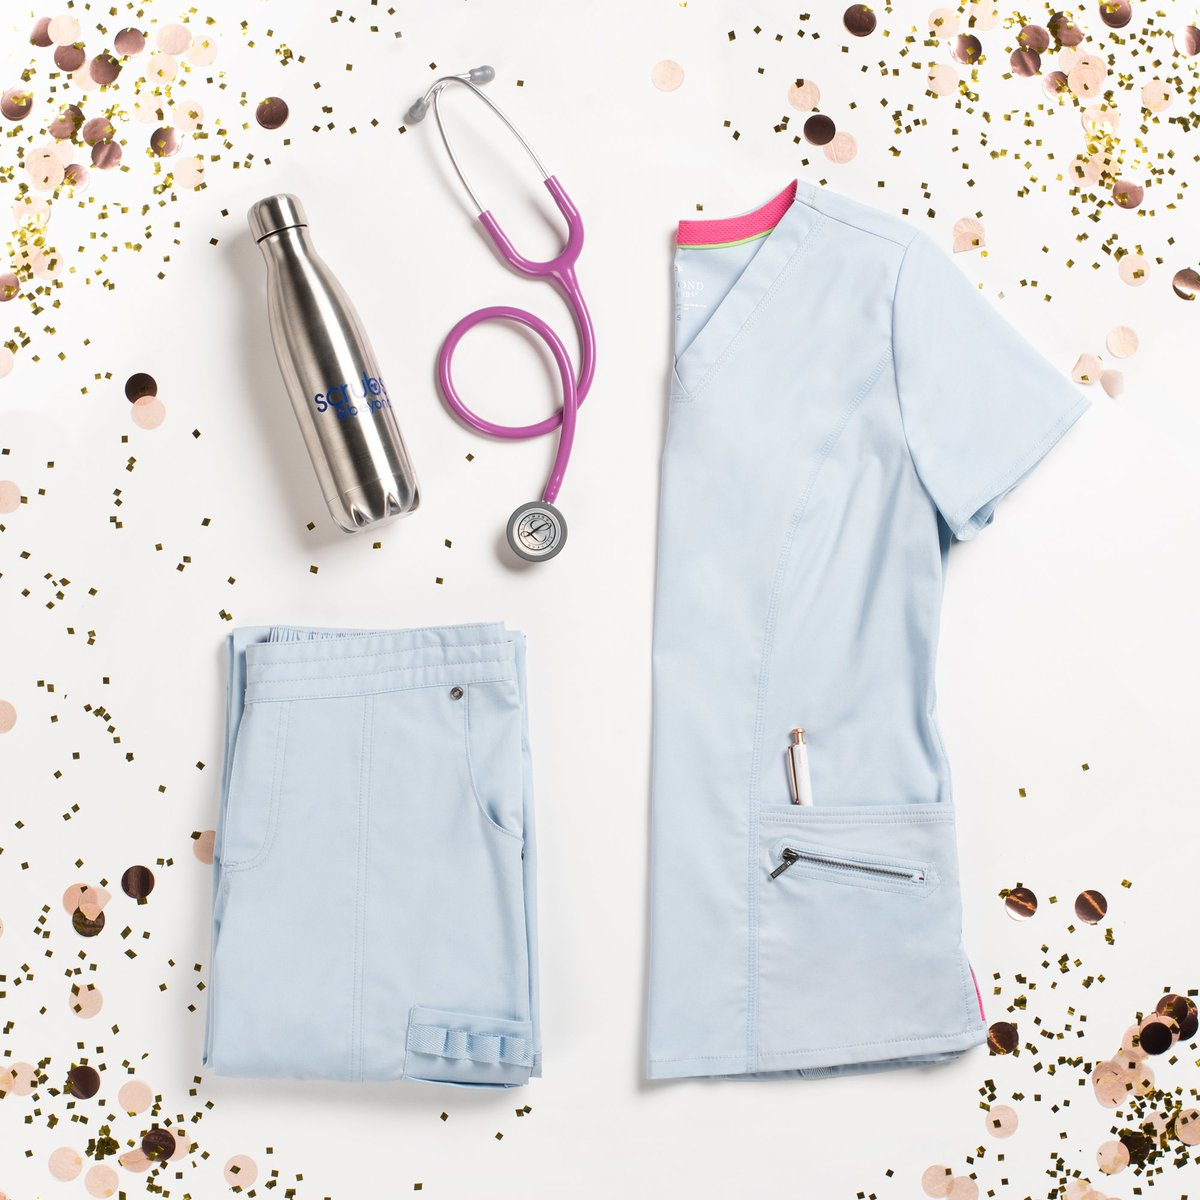 cab5eacaa8a ... Scrubs & Beyond shopping spree! See our post for details!  https://bit.ly/301G3Nq #WeLoveOurNurses #ScrubsandBeyond  #NursesWeekpic.twitter.com/H3IqWowiDd